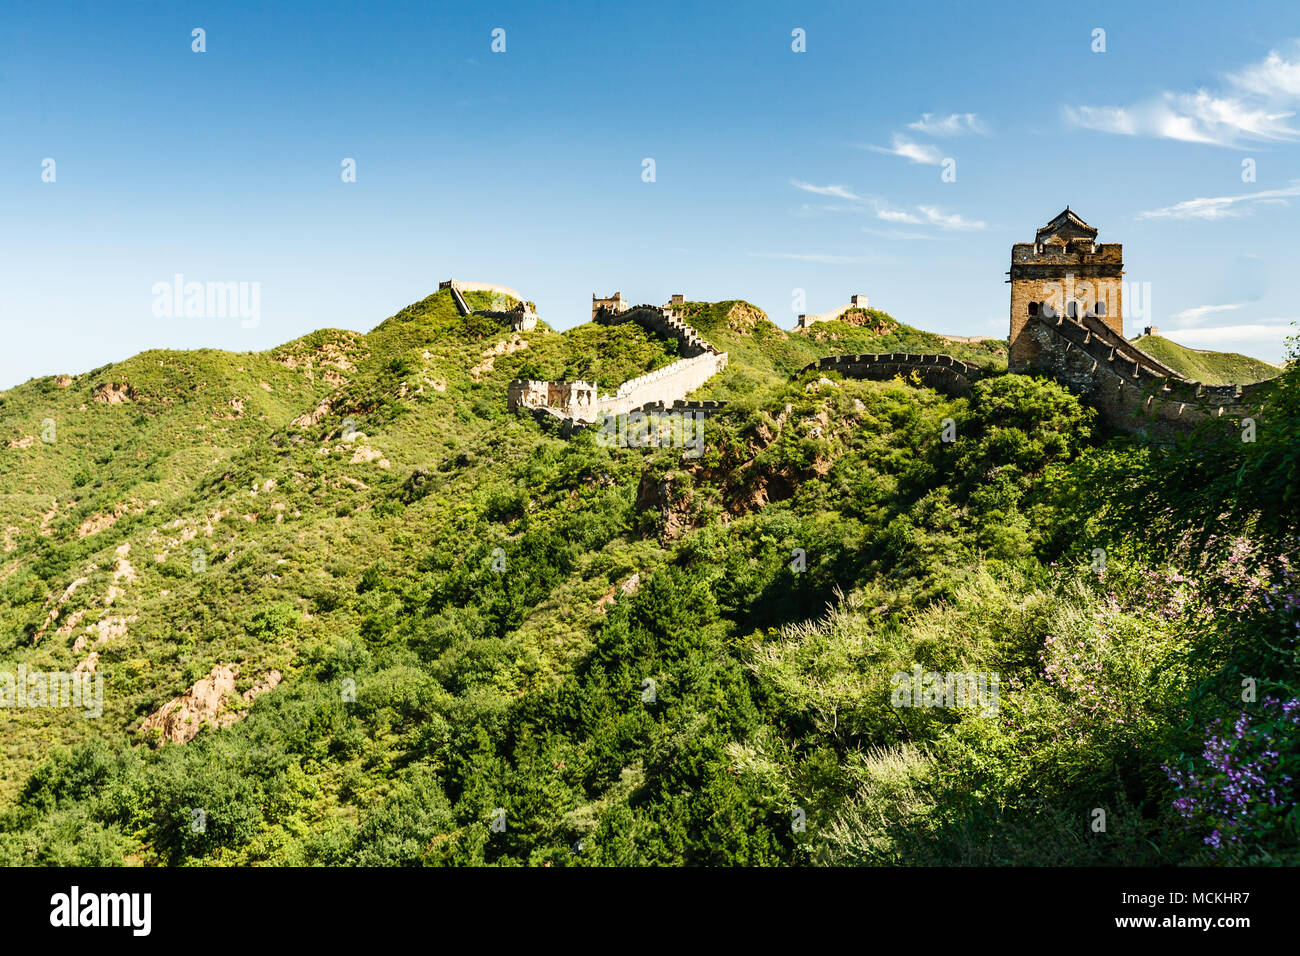 Outpost on the Great Wall of China and green countryside Stock Photo